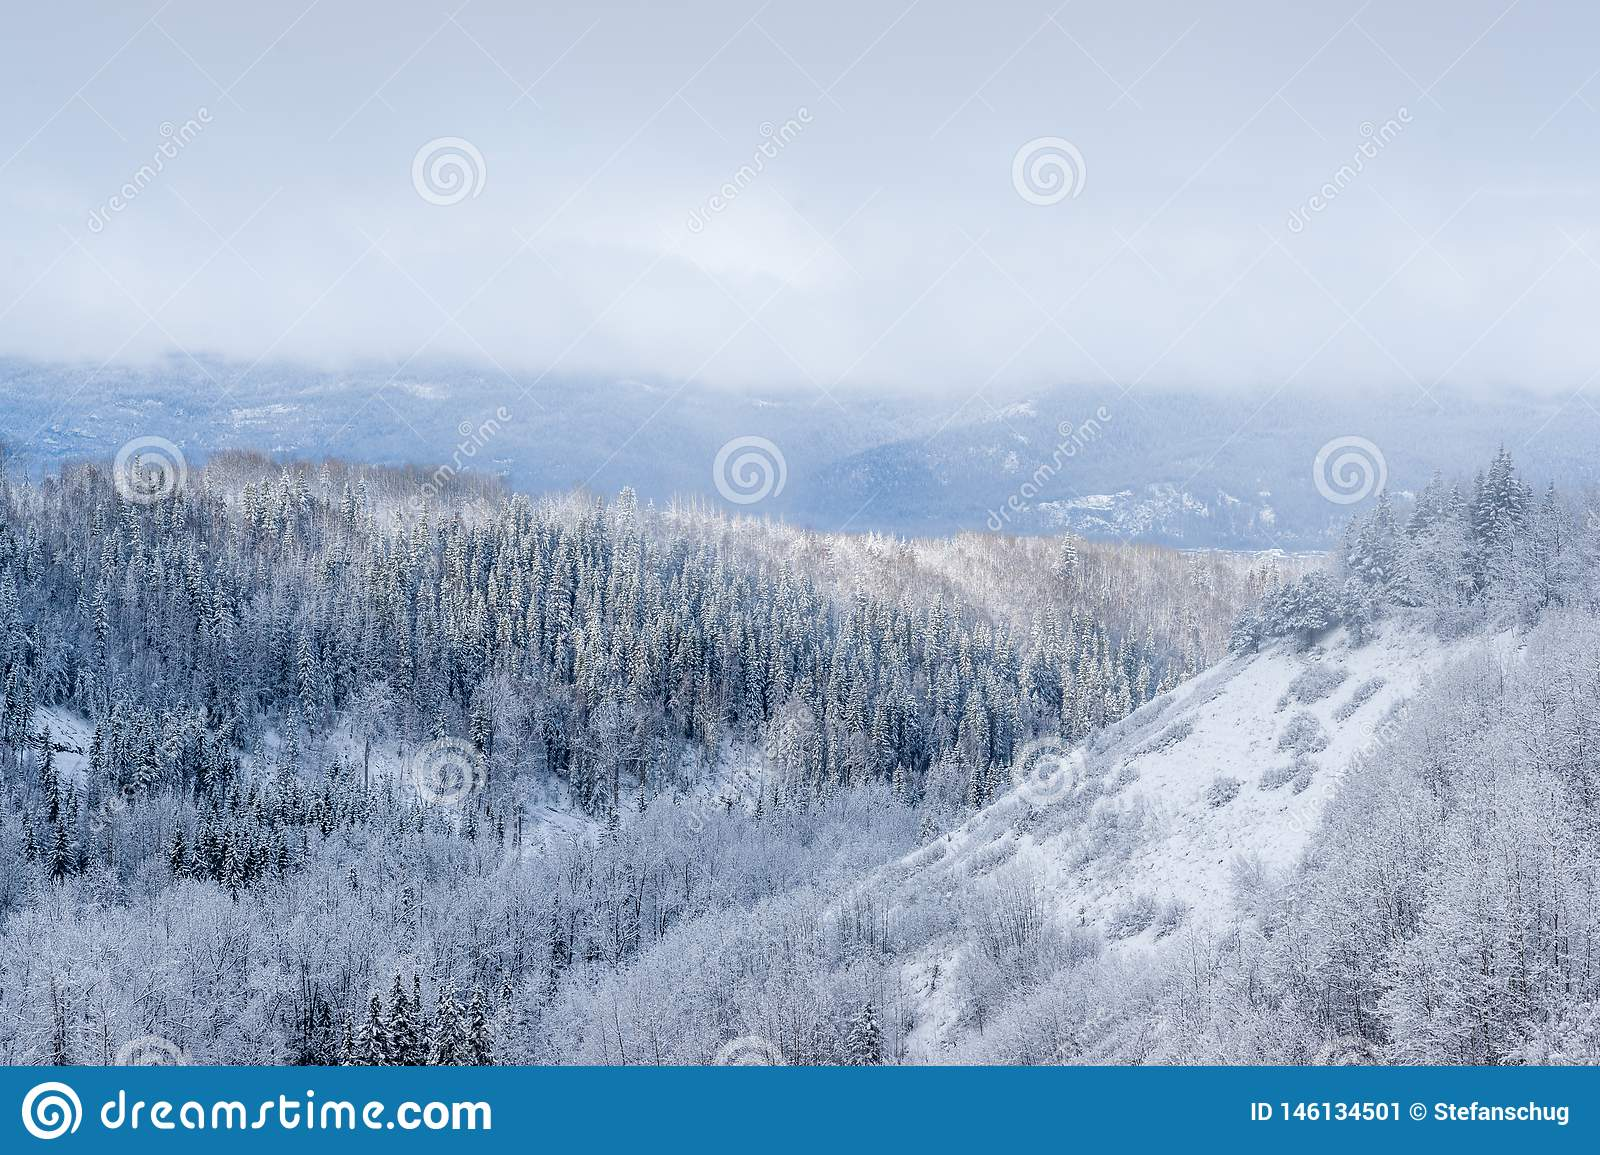 Canadian Wilderness with Mixed Forest - Snow Covered